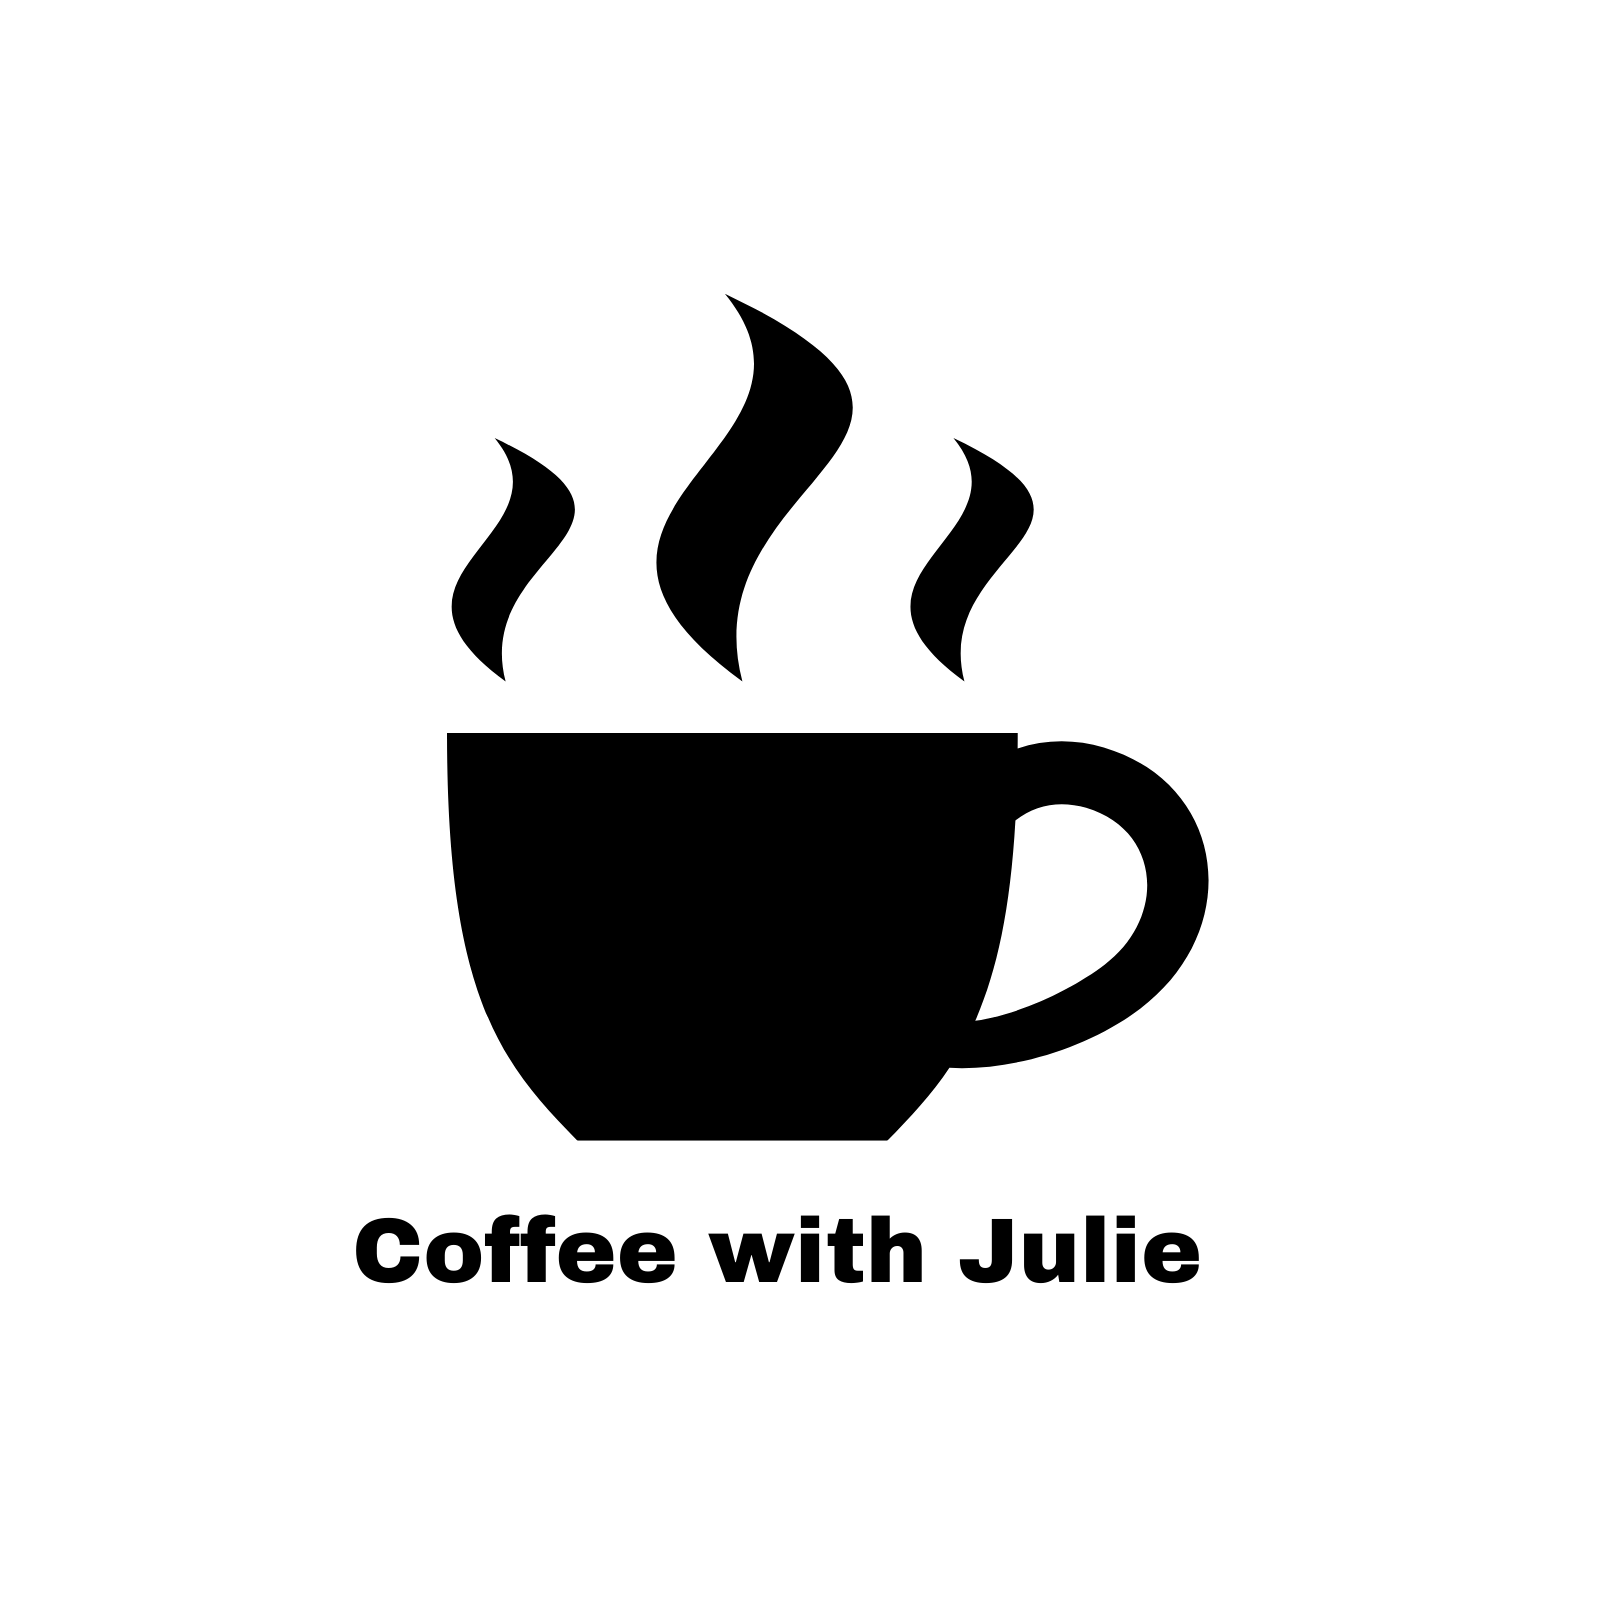 Coffee with Julie